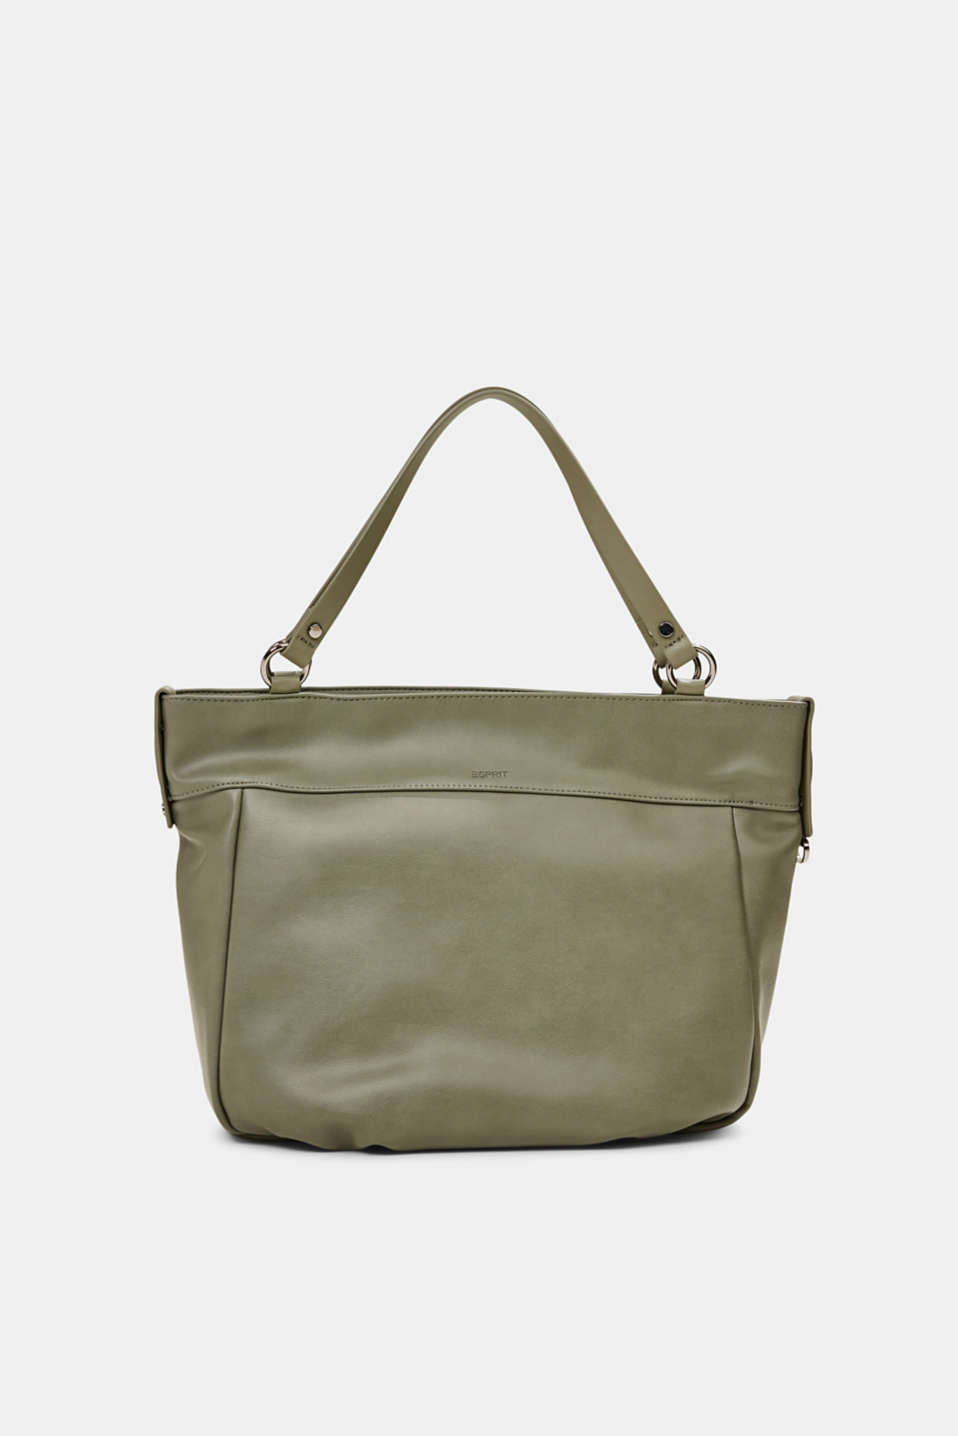 Esprit - Vegan: borsa shopper in similpelle